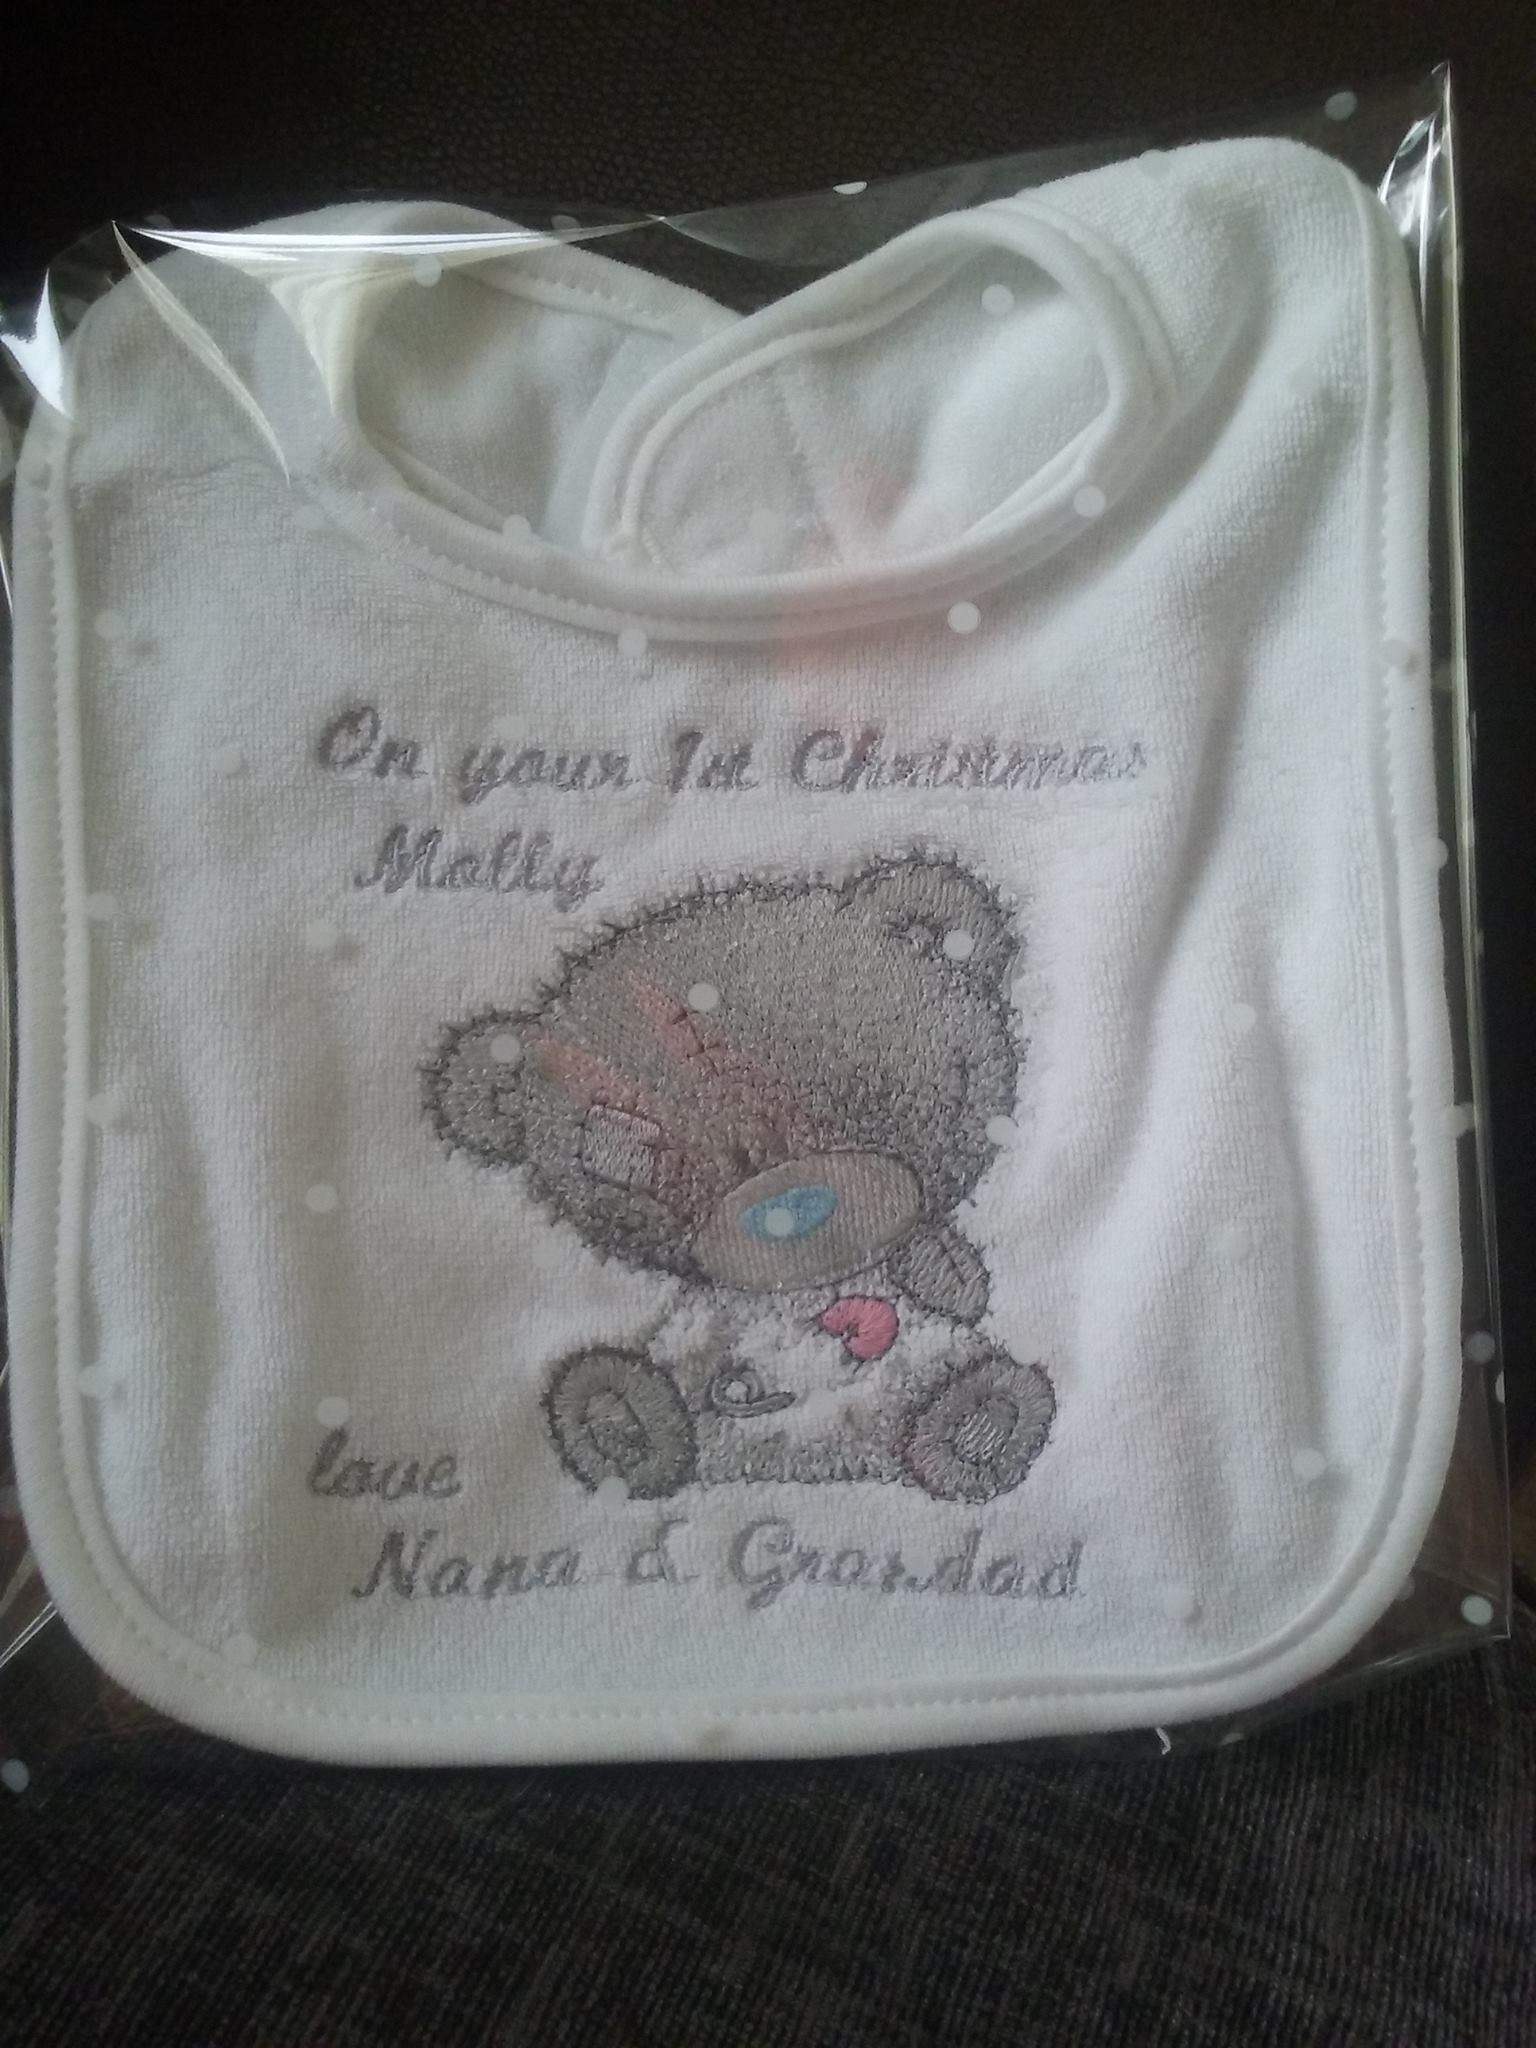 Baby bib with Teddy bear I dressed myself applique embroidery design